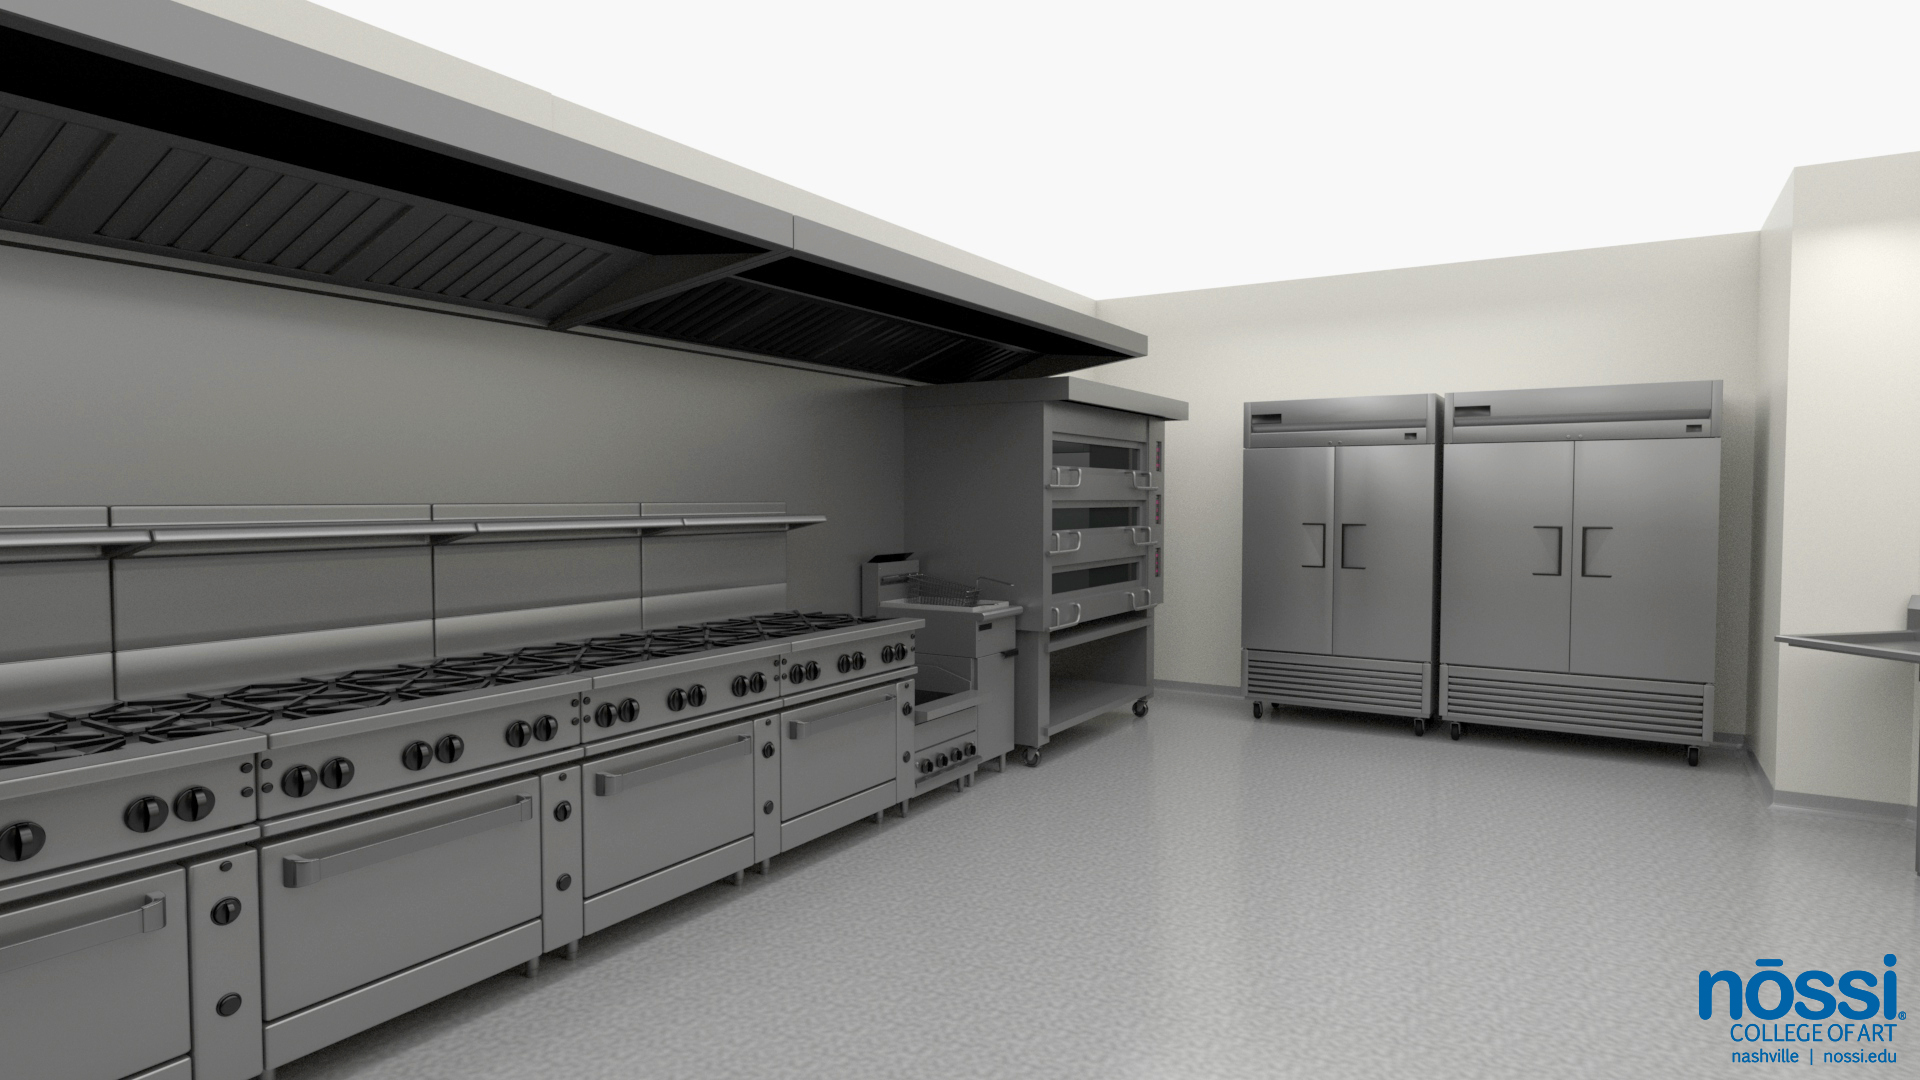 Art College Kitchen Mockup, Culinary Arts Degree, teaching line with gas grills and stoves